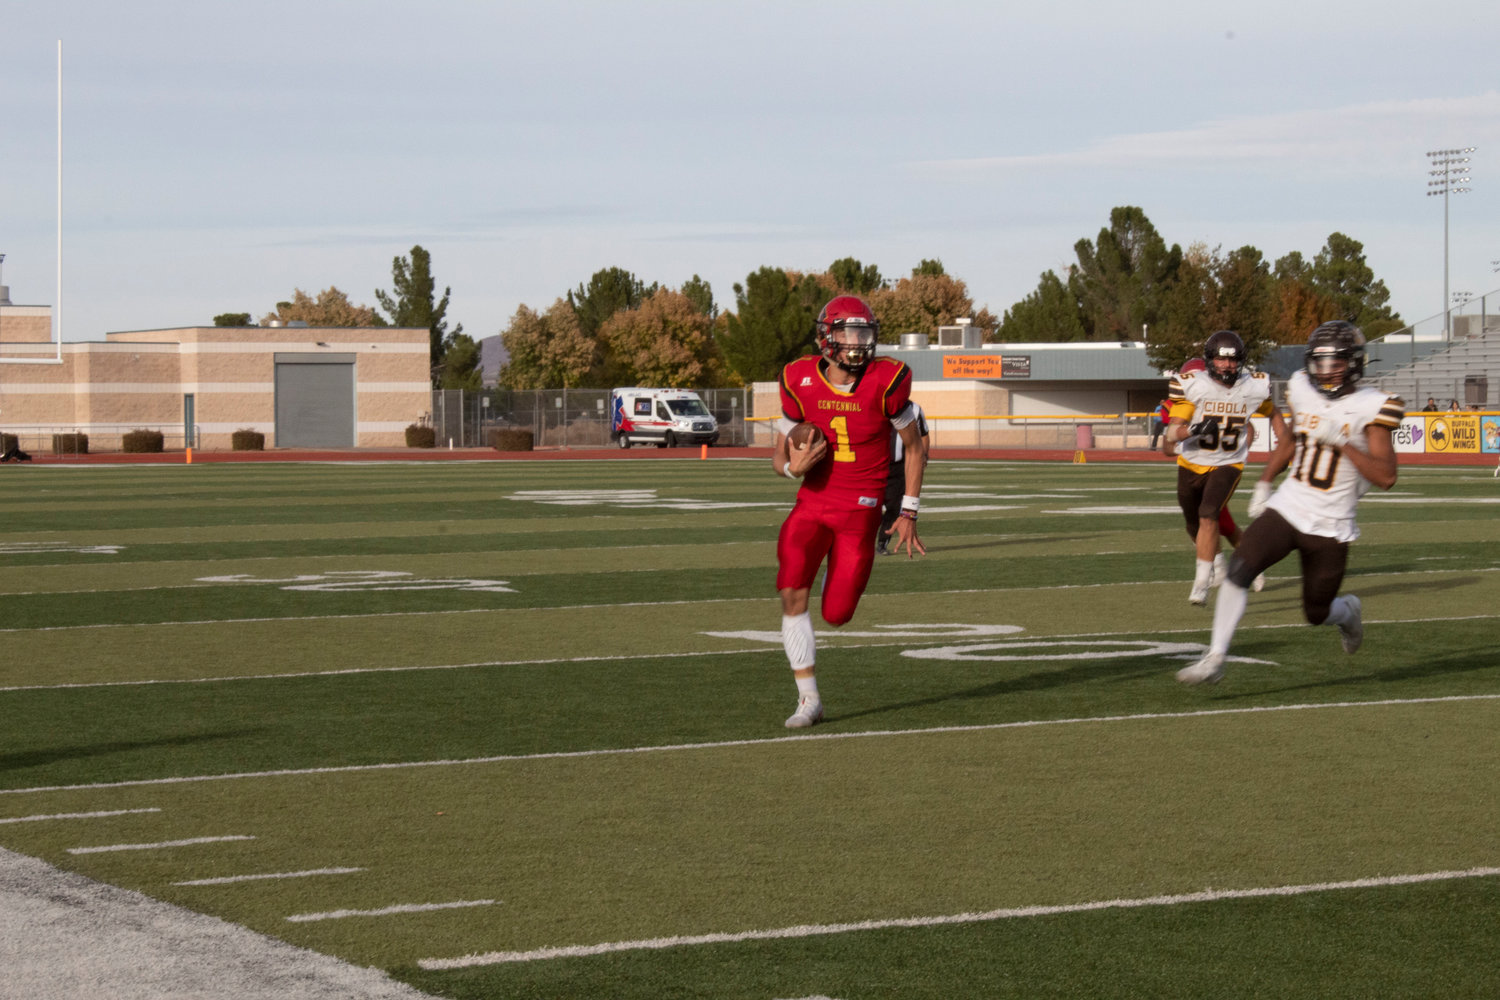 Centennial senior QB/WR Aidan Trujillo is off to the races against Cibola in the opening round.